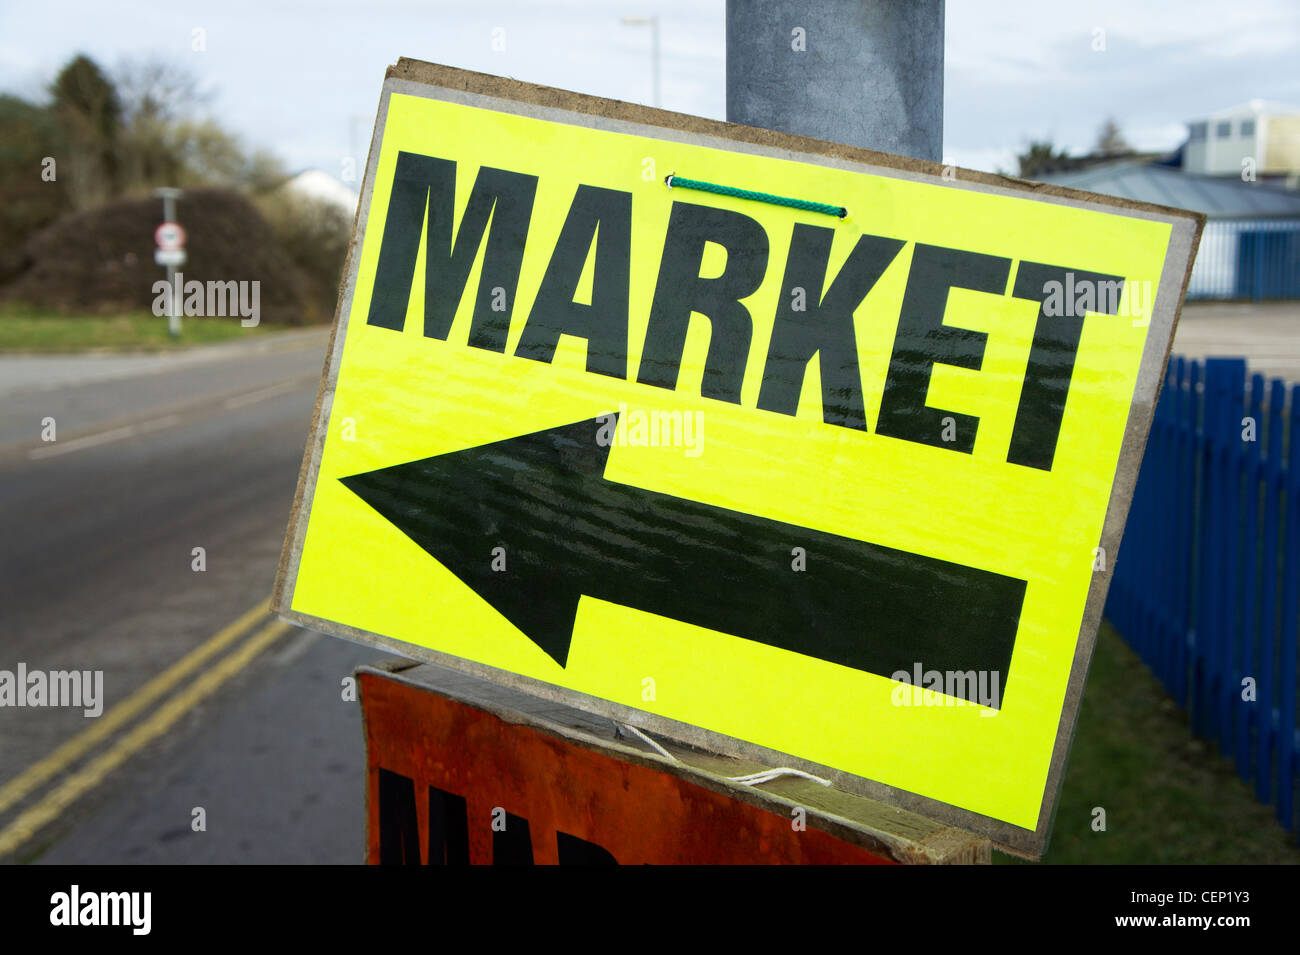 A direction sign for a local market in Bolton, Lancashire, UK - Stock Image